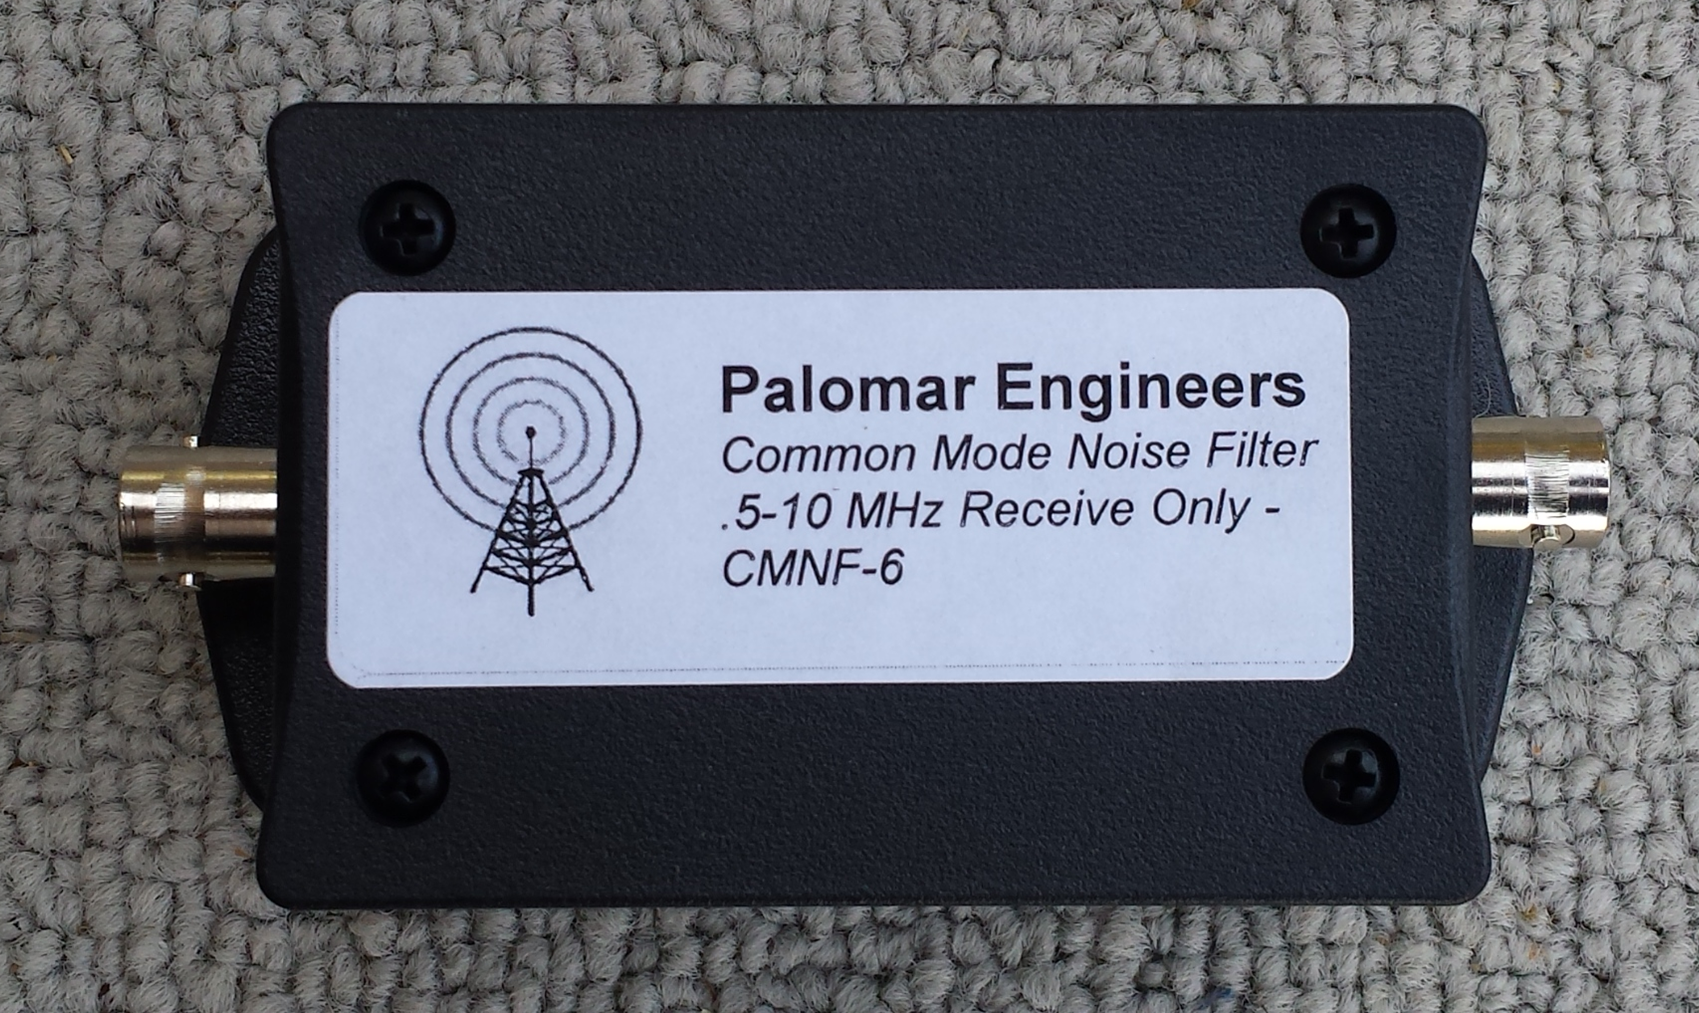 CABLE TV/Satellite RFI Coax Noise Filter, stops 200 KHz-30 MHz interference